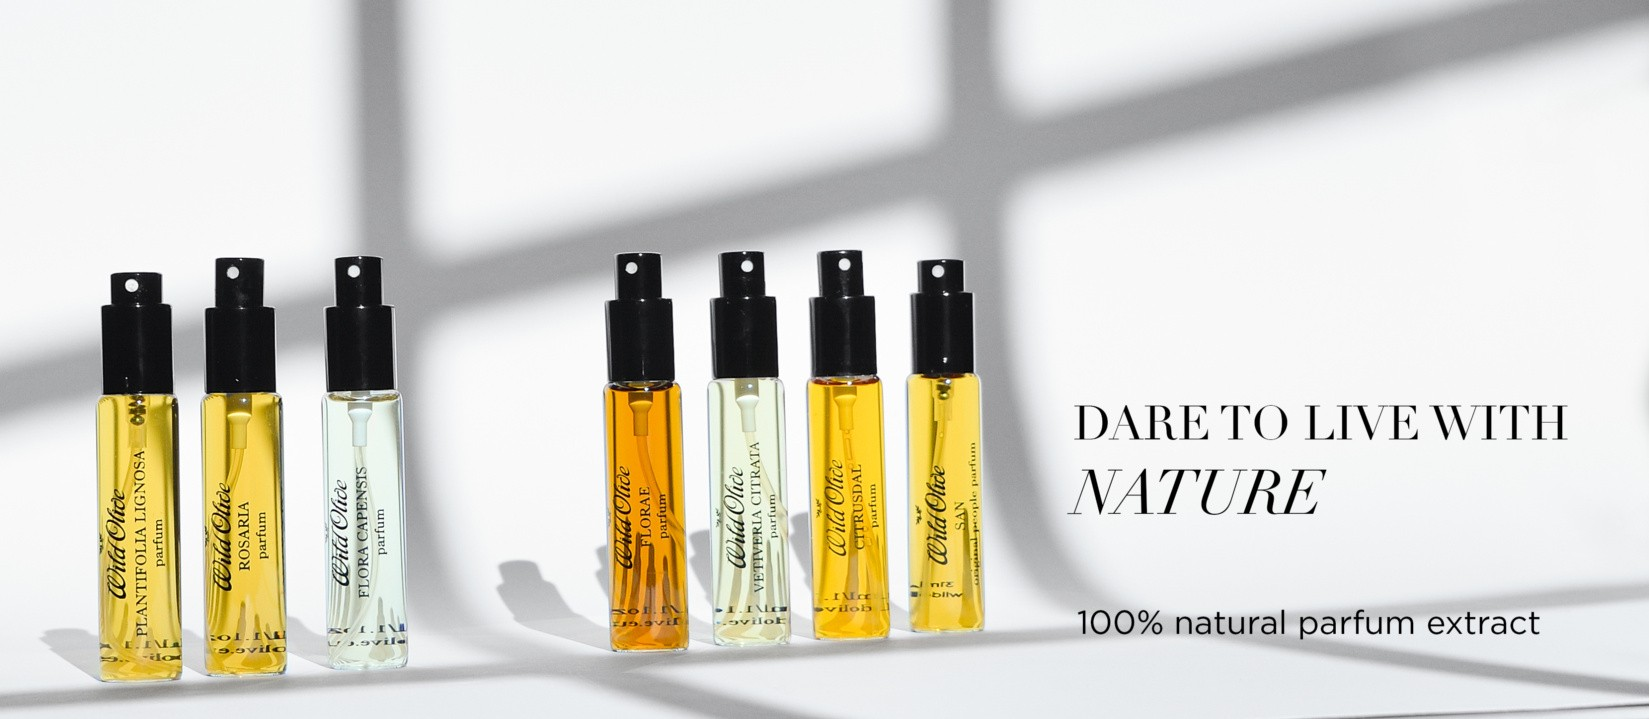 dare-to-live-with-nature---parfum-banner